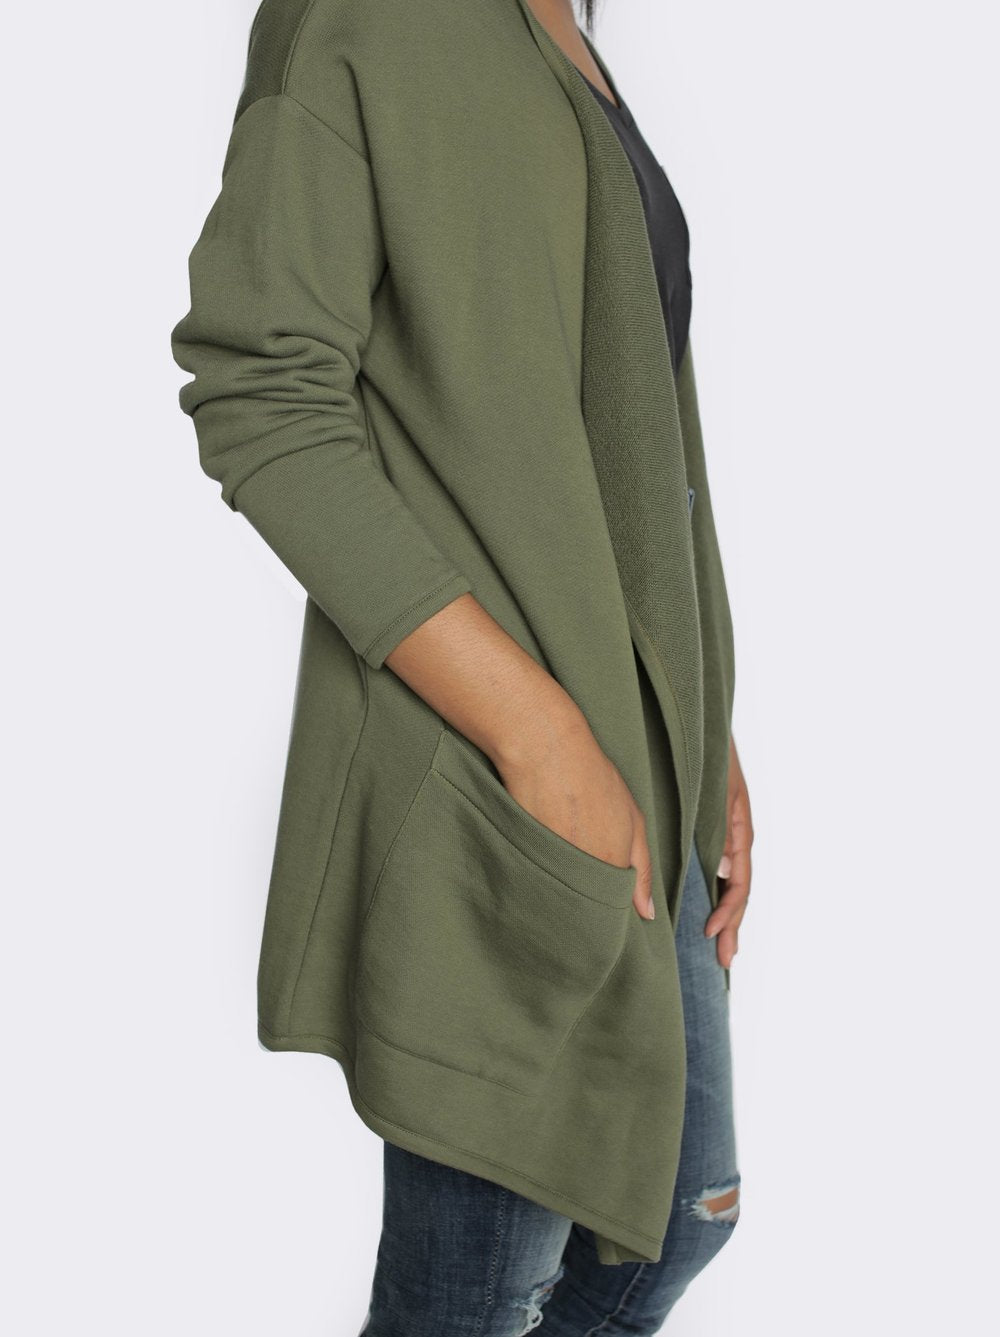 Sol_Sweater_Coat_Olive_Side2.jpg